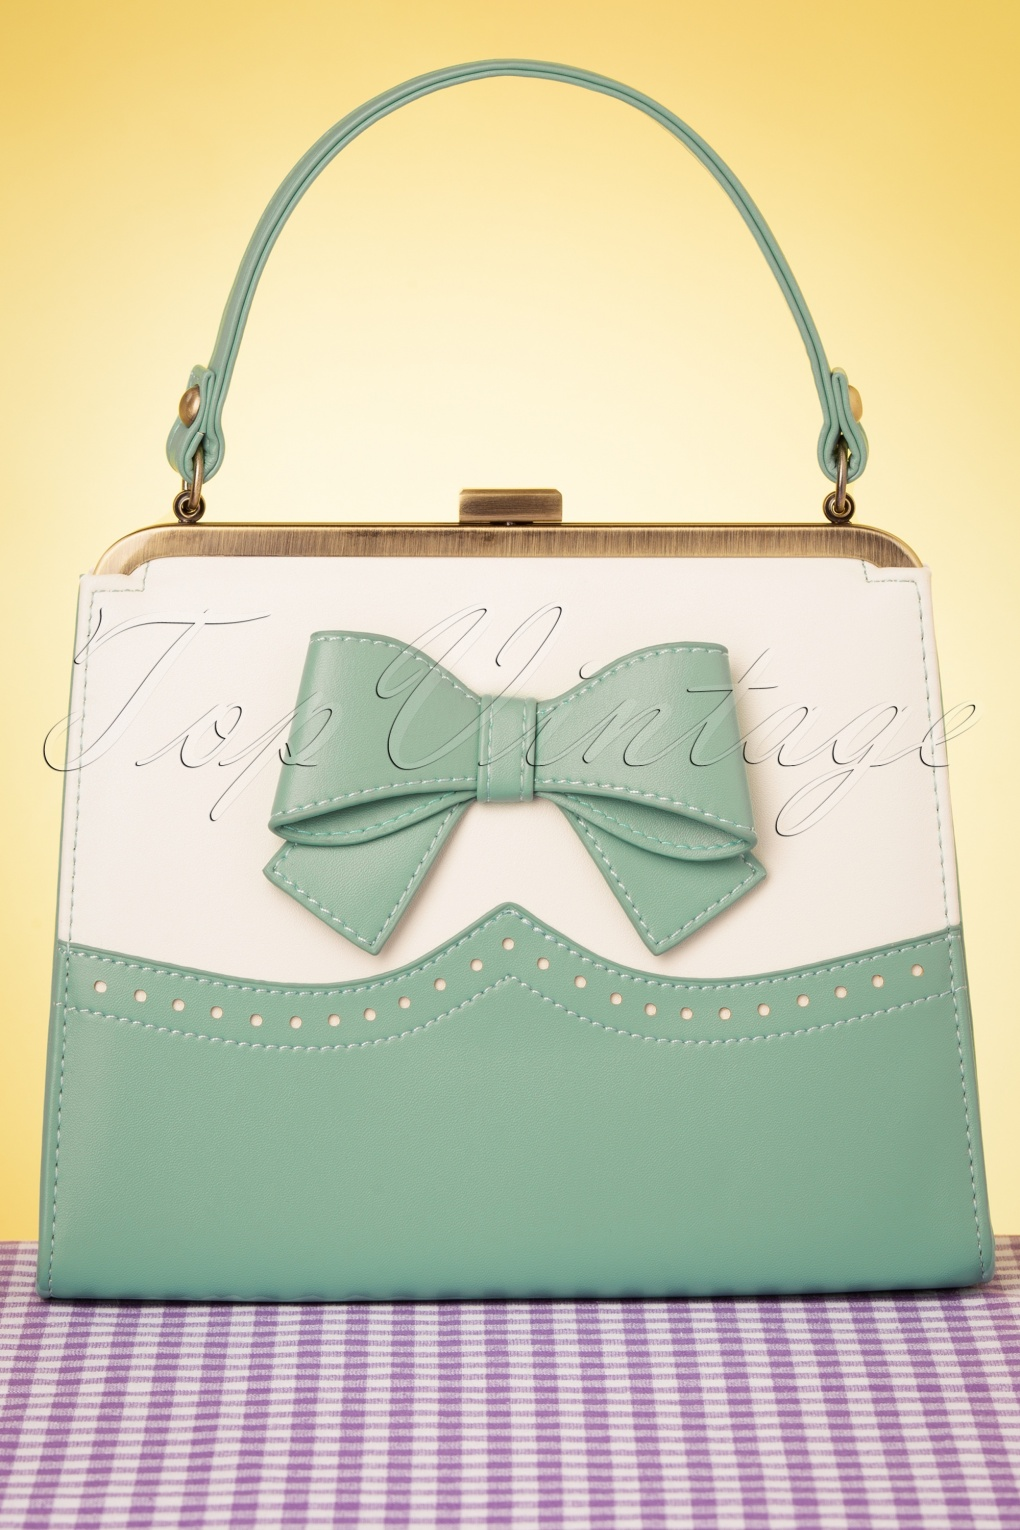 1950s Accessories | 50s Scarf, Belt, Parasol, Umbrella 50s Inez Classica Bag in Mint and White £57.02 AT vintagedancer.com